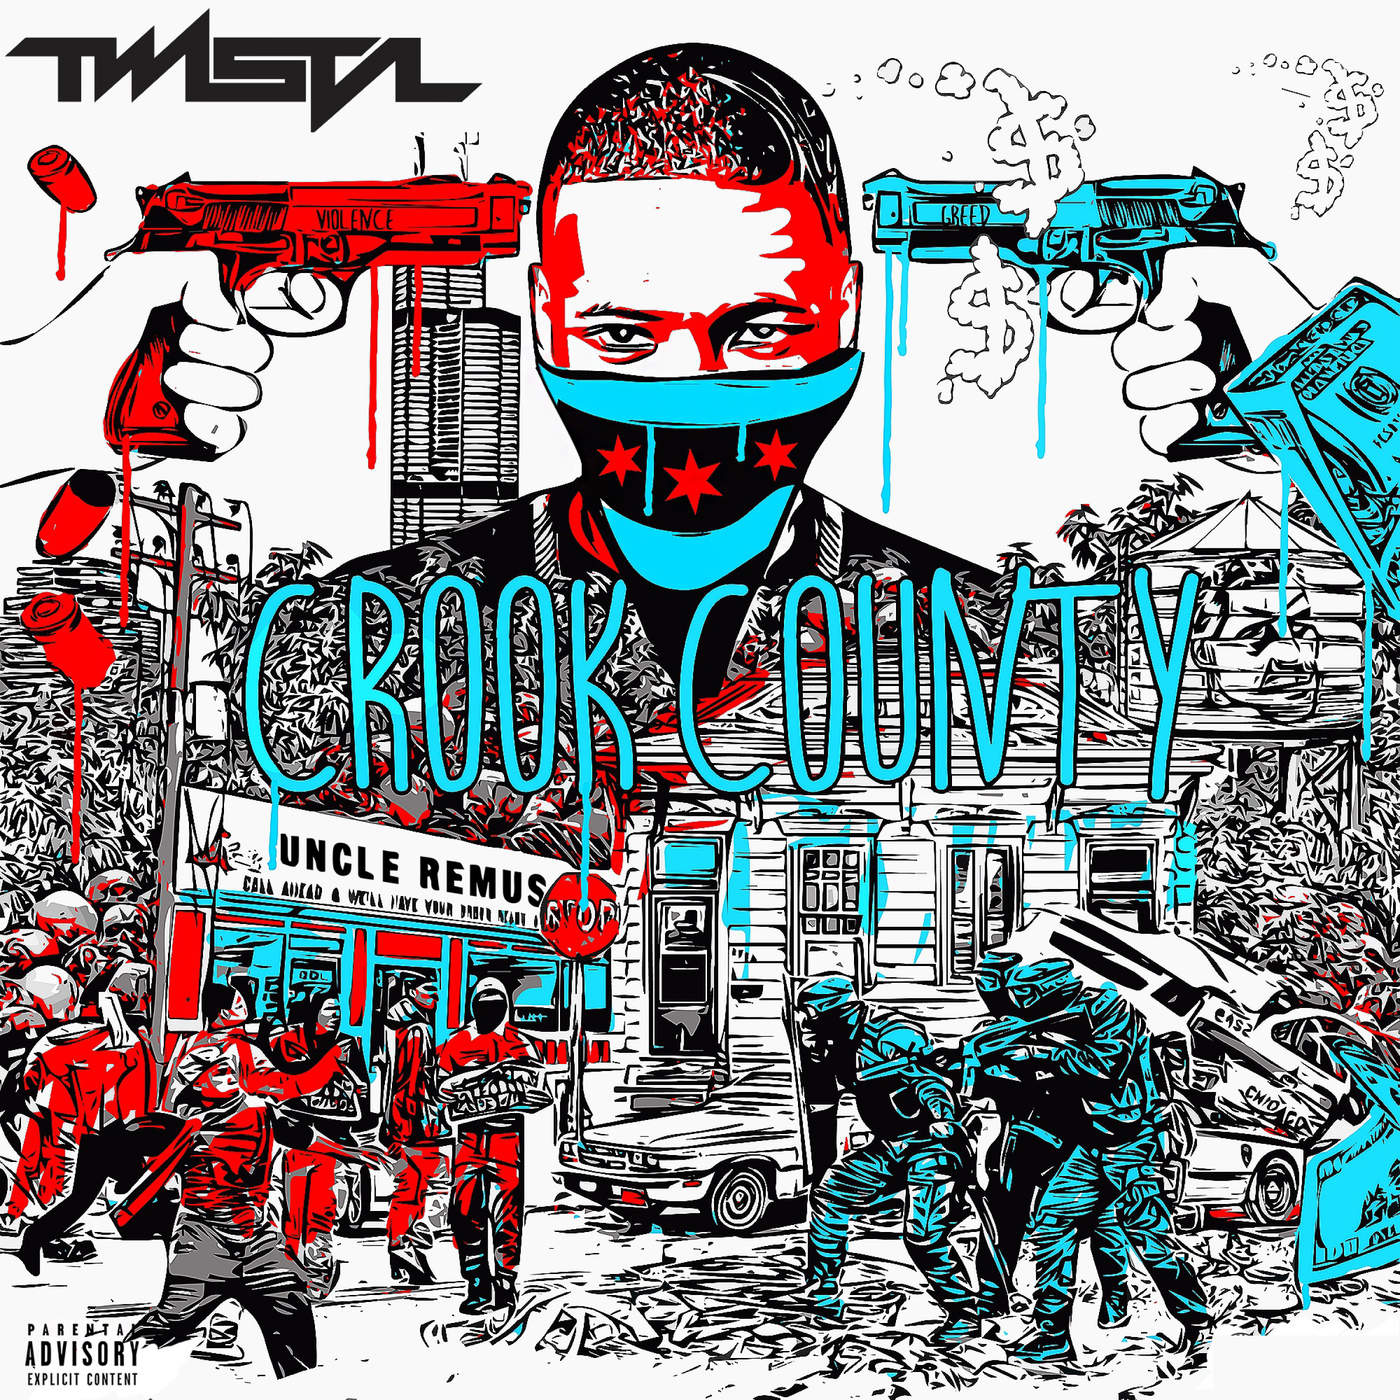 Twista - Crook County Cover